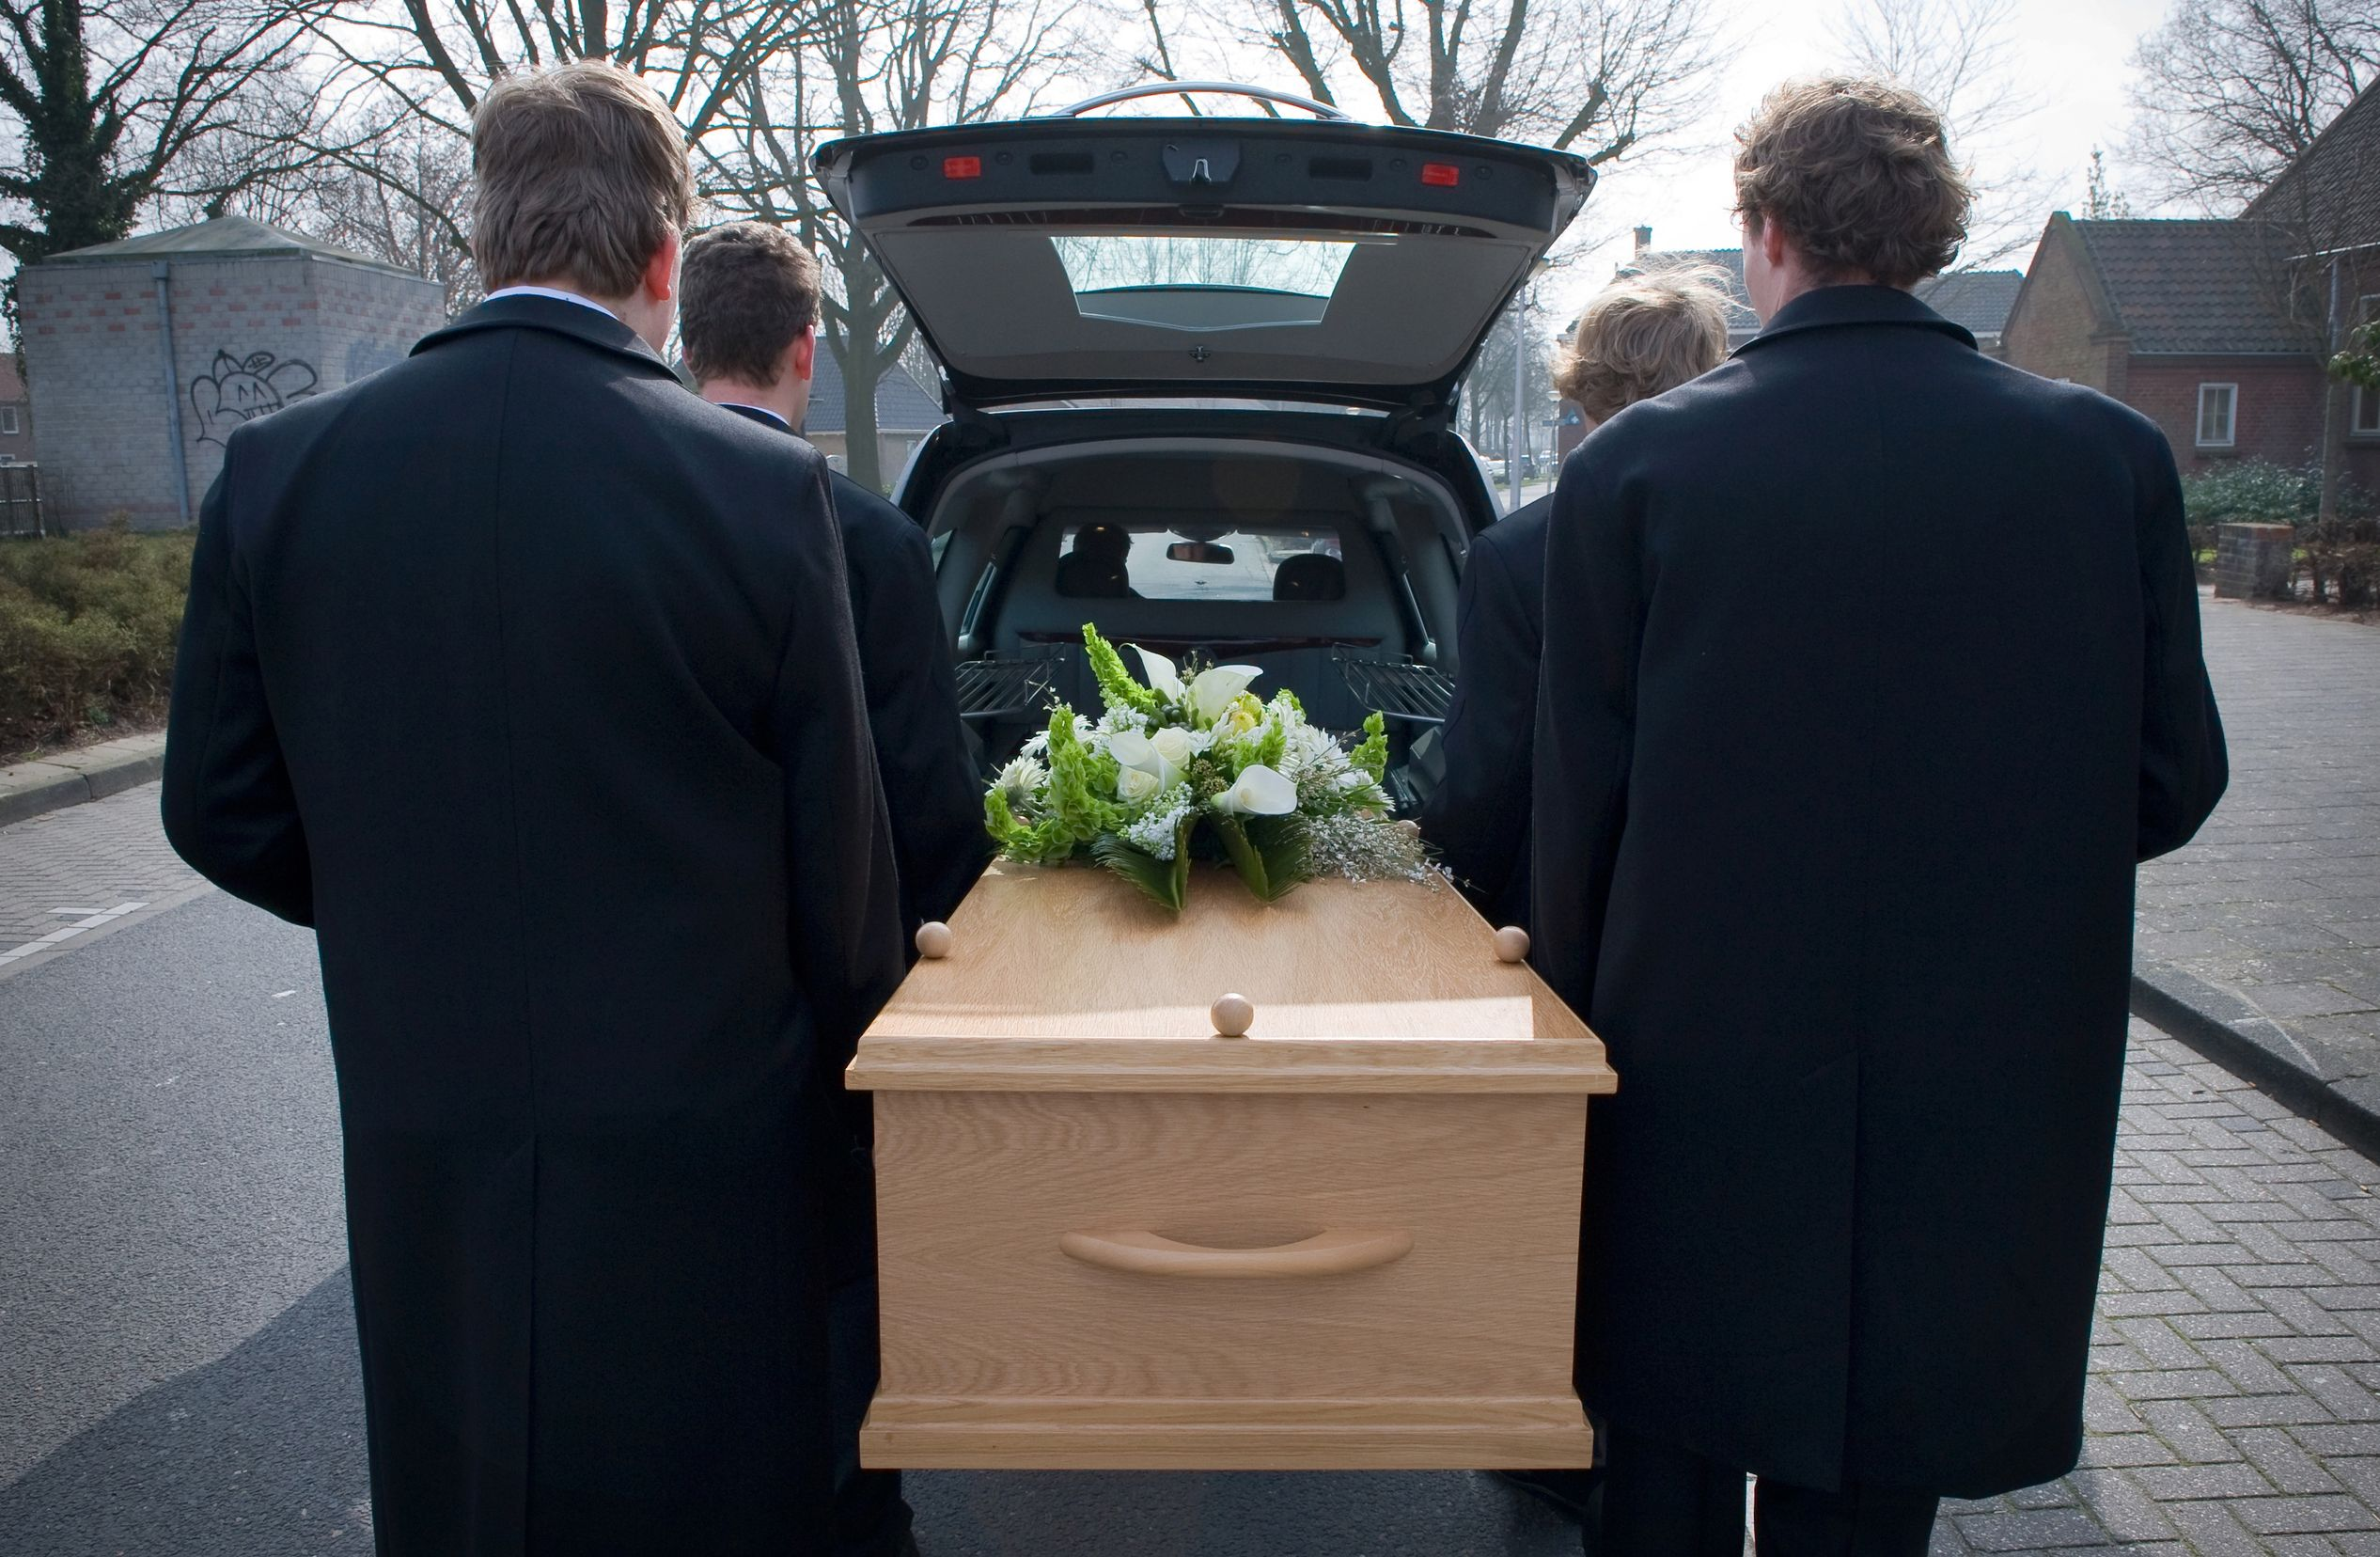 The Pros of Prepaid Funeral Services